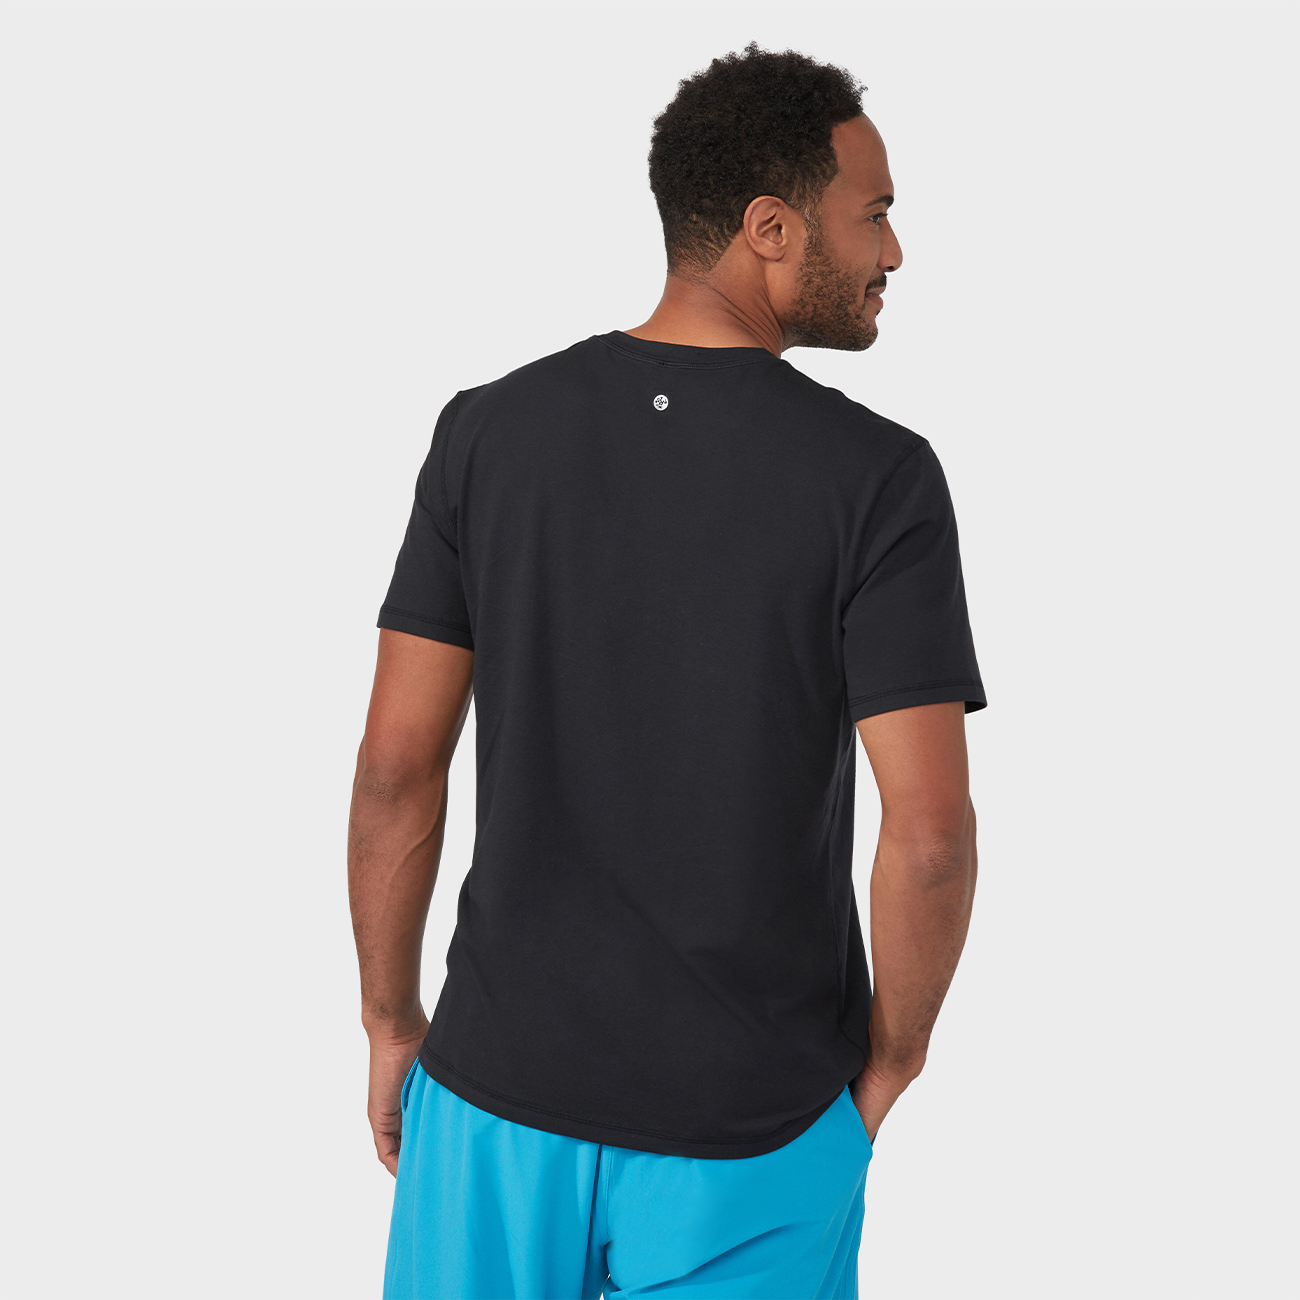 Performance Top Crew Neck Tee - Black | T-Shirts | Herren ...